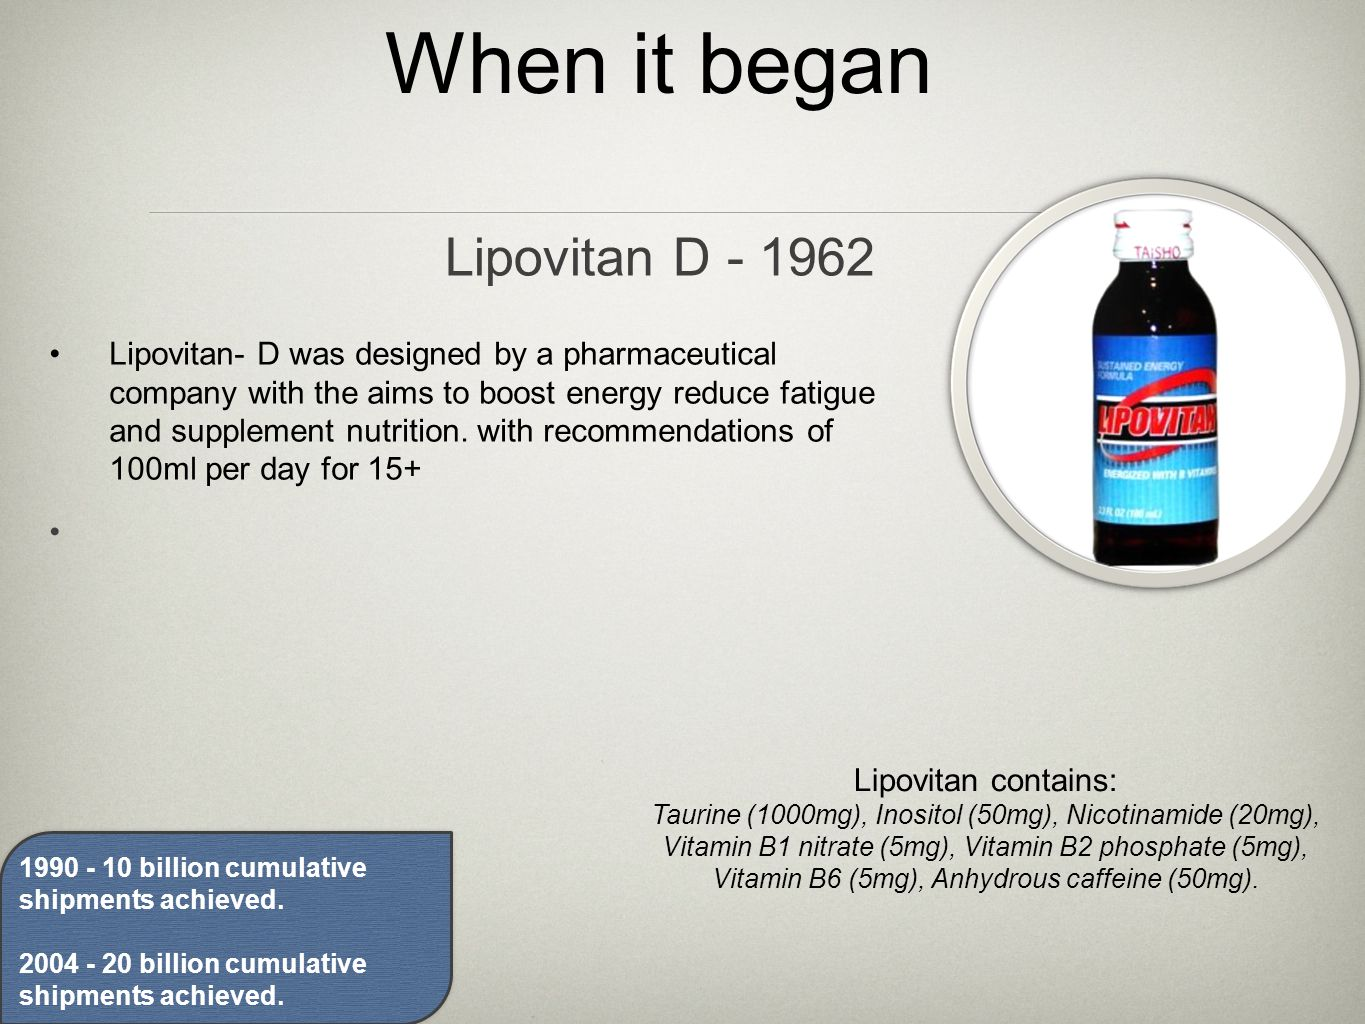 When it began Lipovitan- D was designed by a pharmaceutical company with the aims to boost energy reduce fatigue and supplement nutrition.